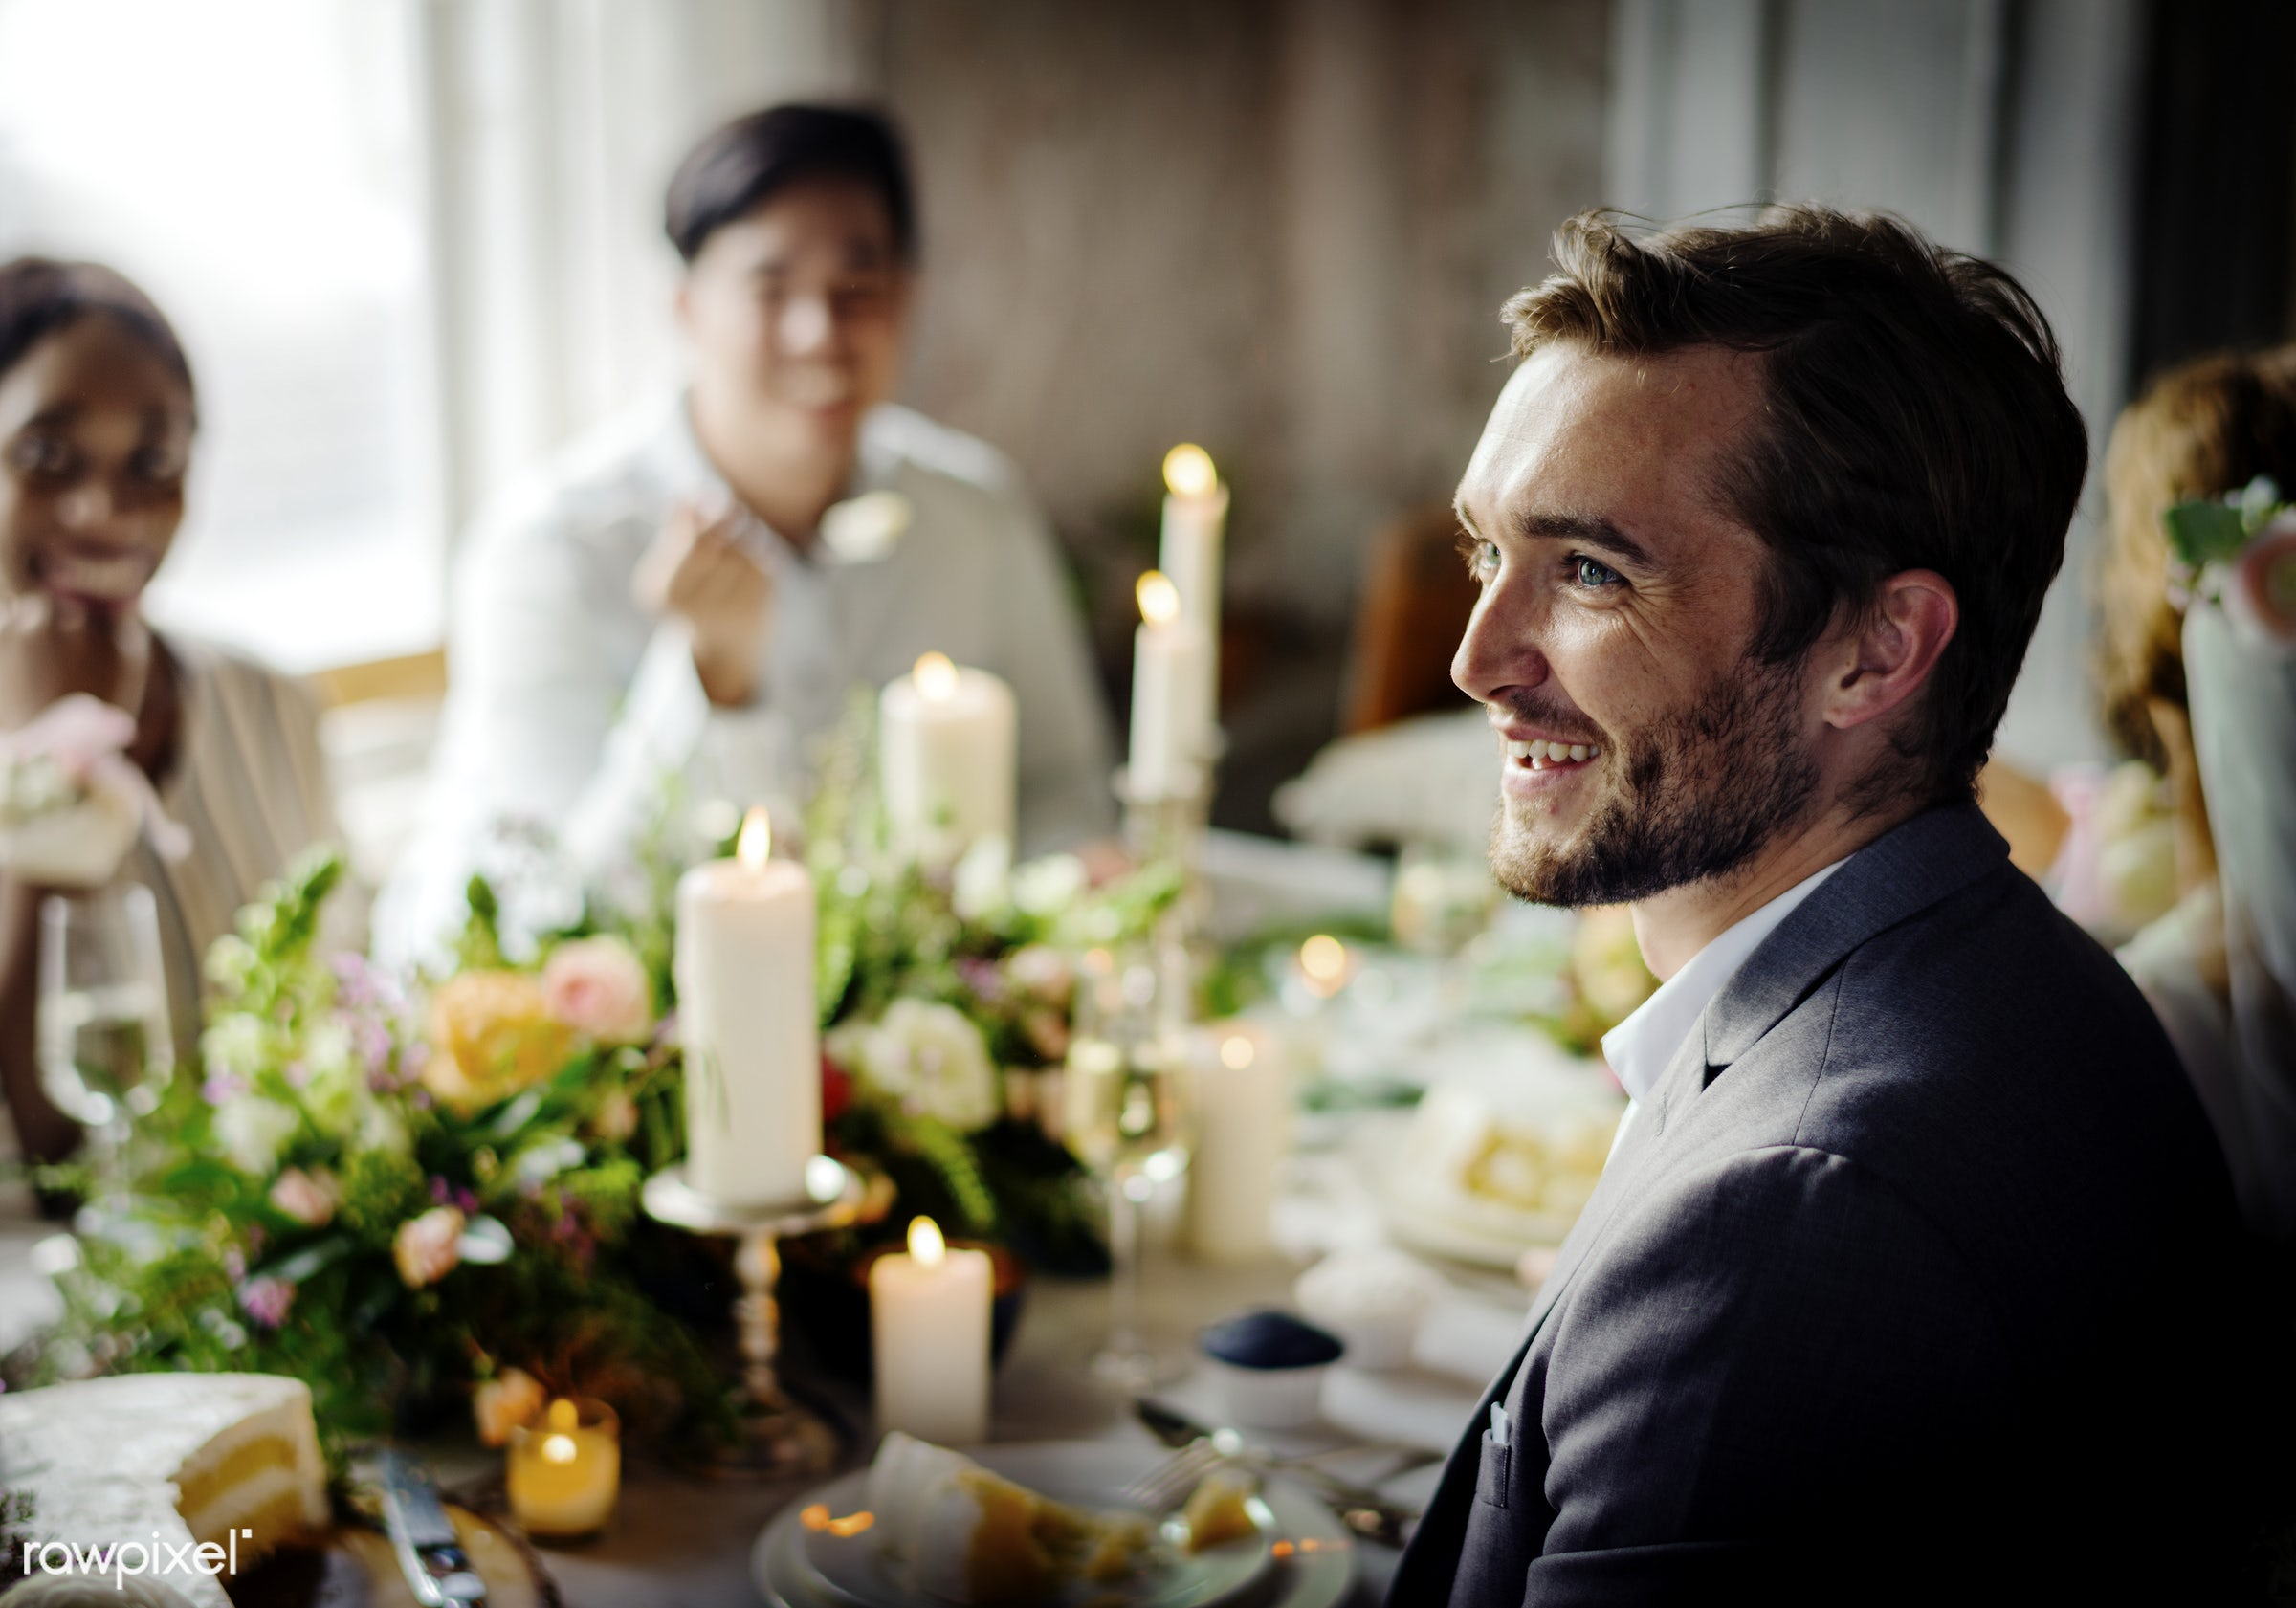 Groom listening to a speech at a wedding reception table - alcohol, bride, celebration, champagne, couple, drinking, event,...